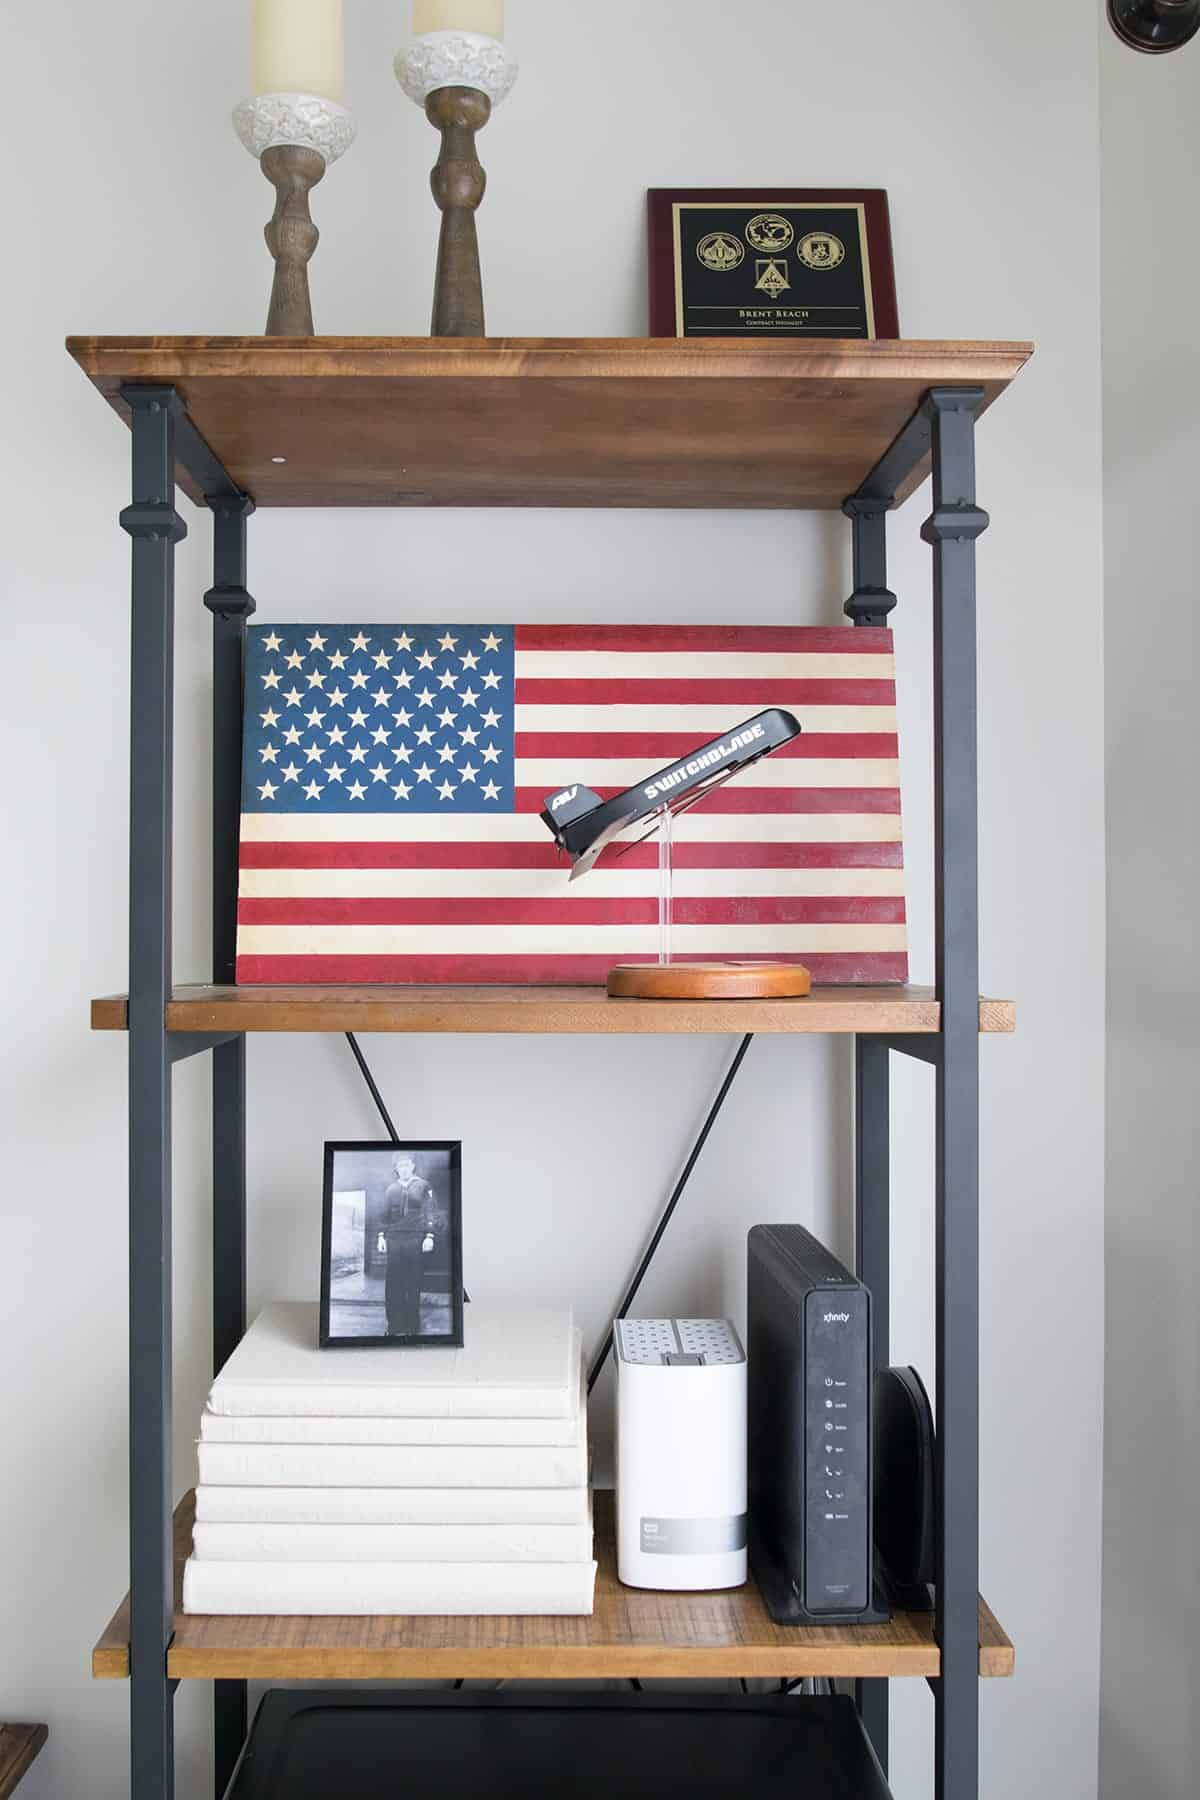 Industrial looking wood and black metal office shelf with patriotic pictures and decor.